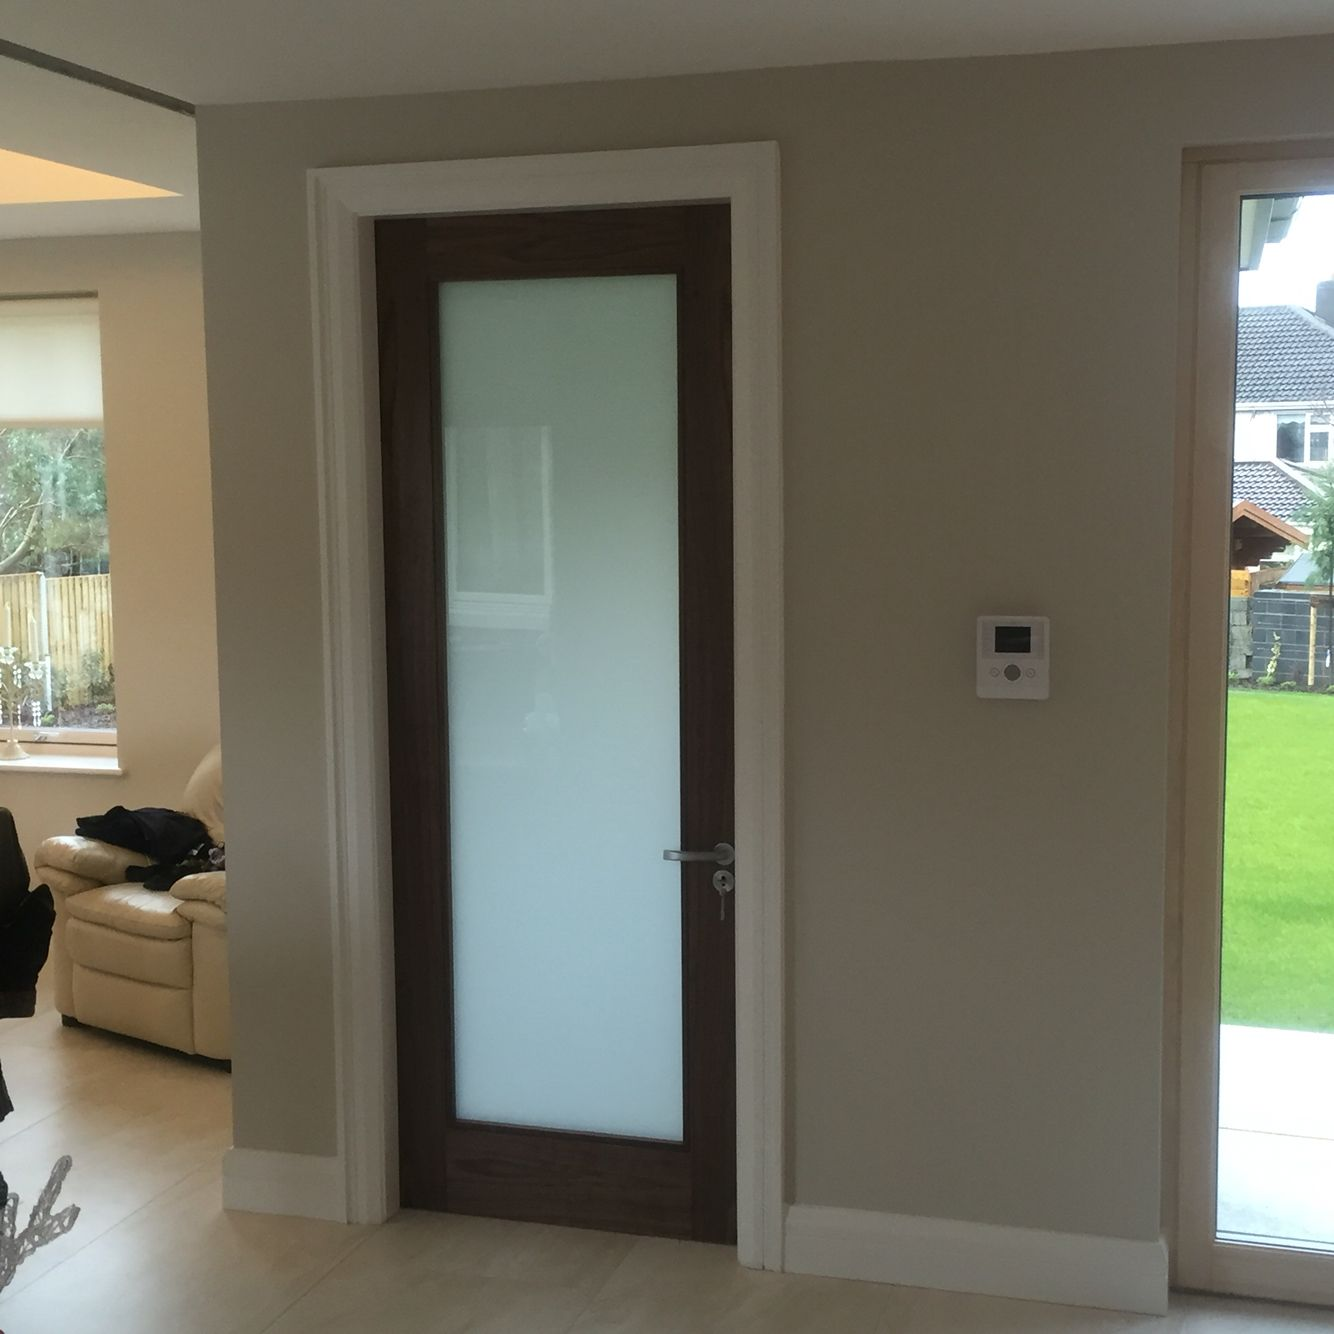 Walnut internal door with frosted glass | Versatility Of ...